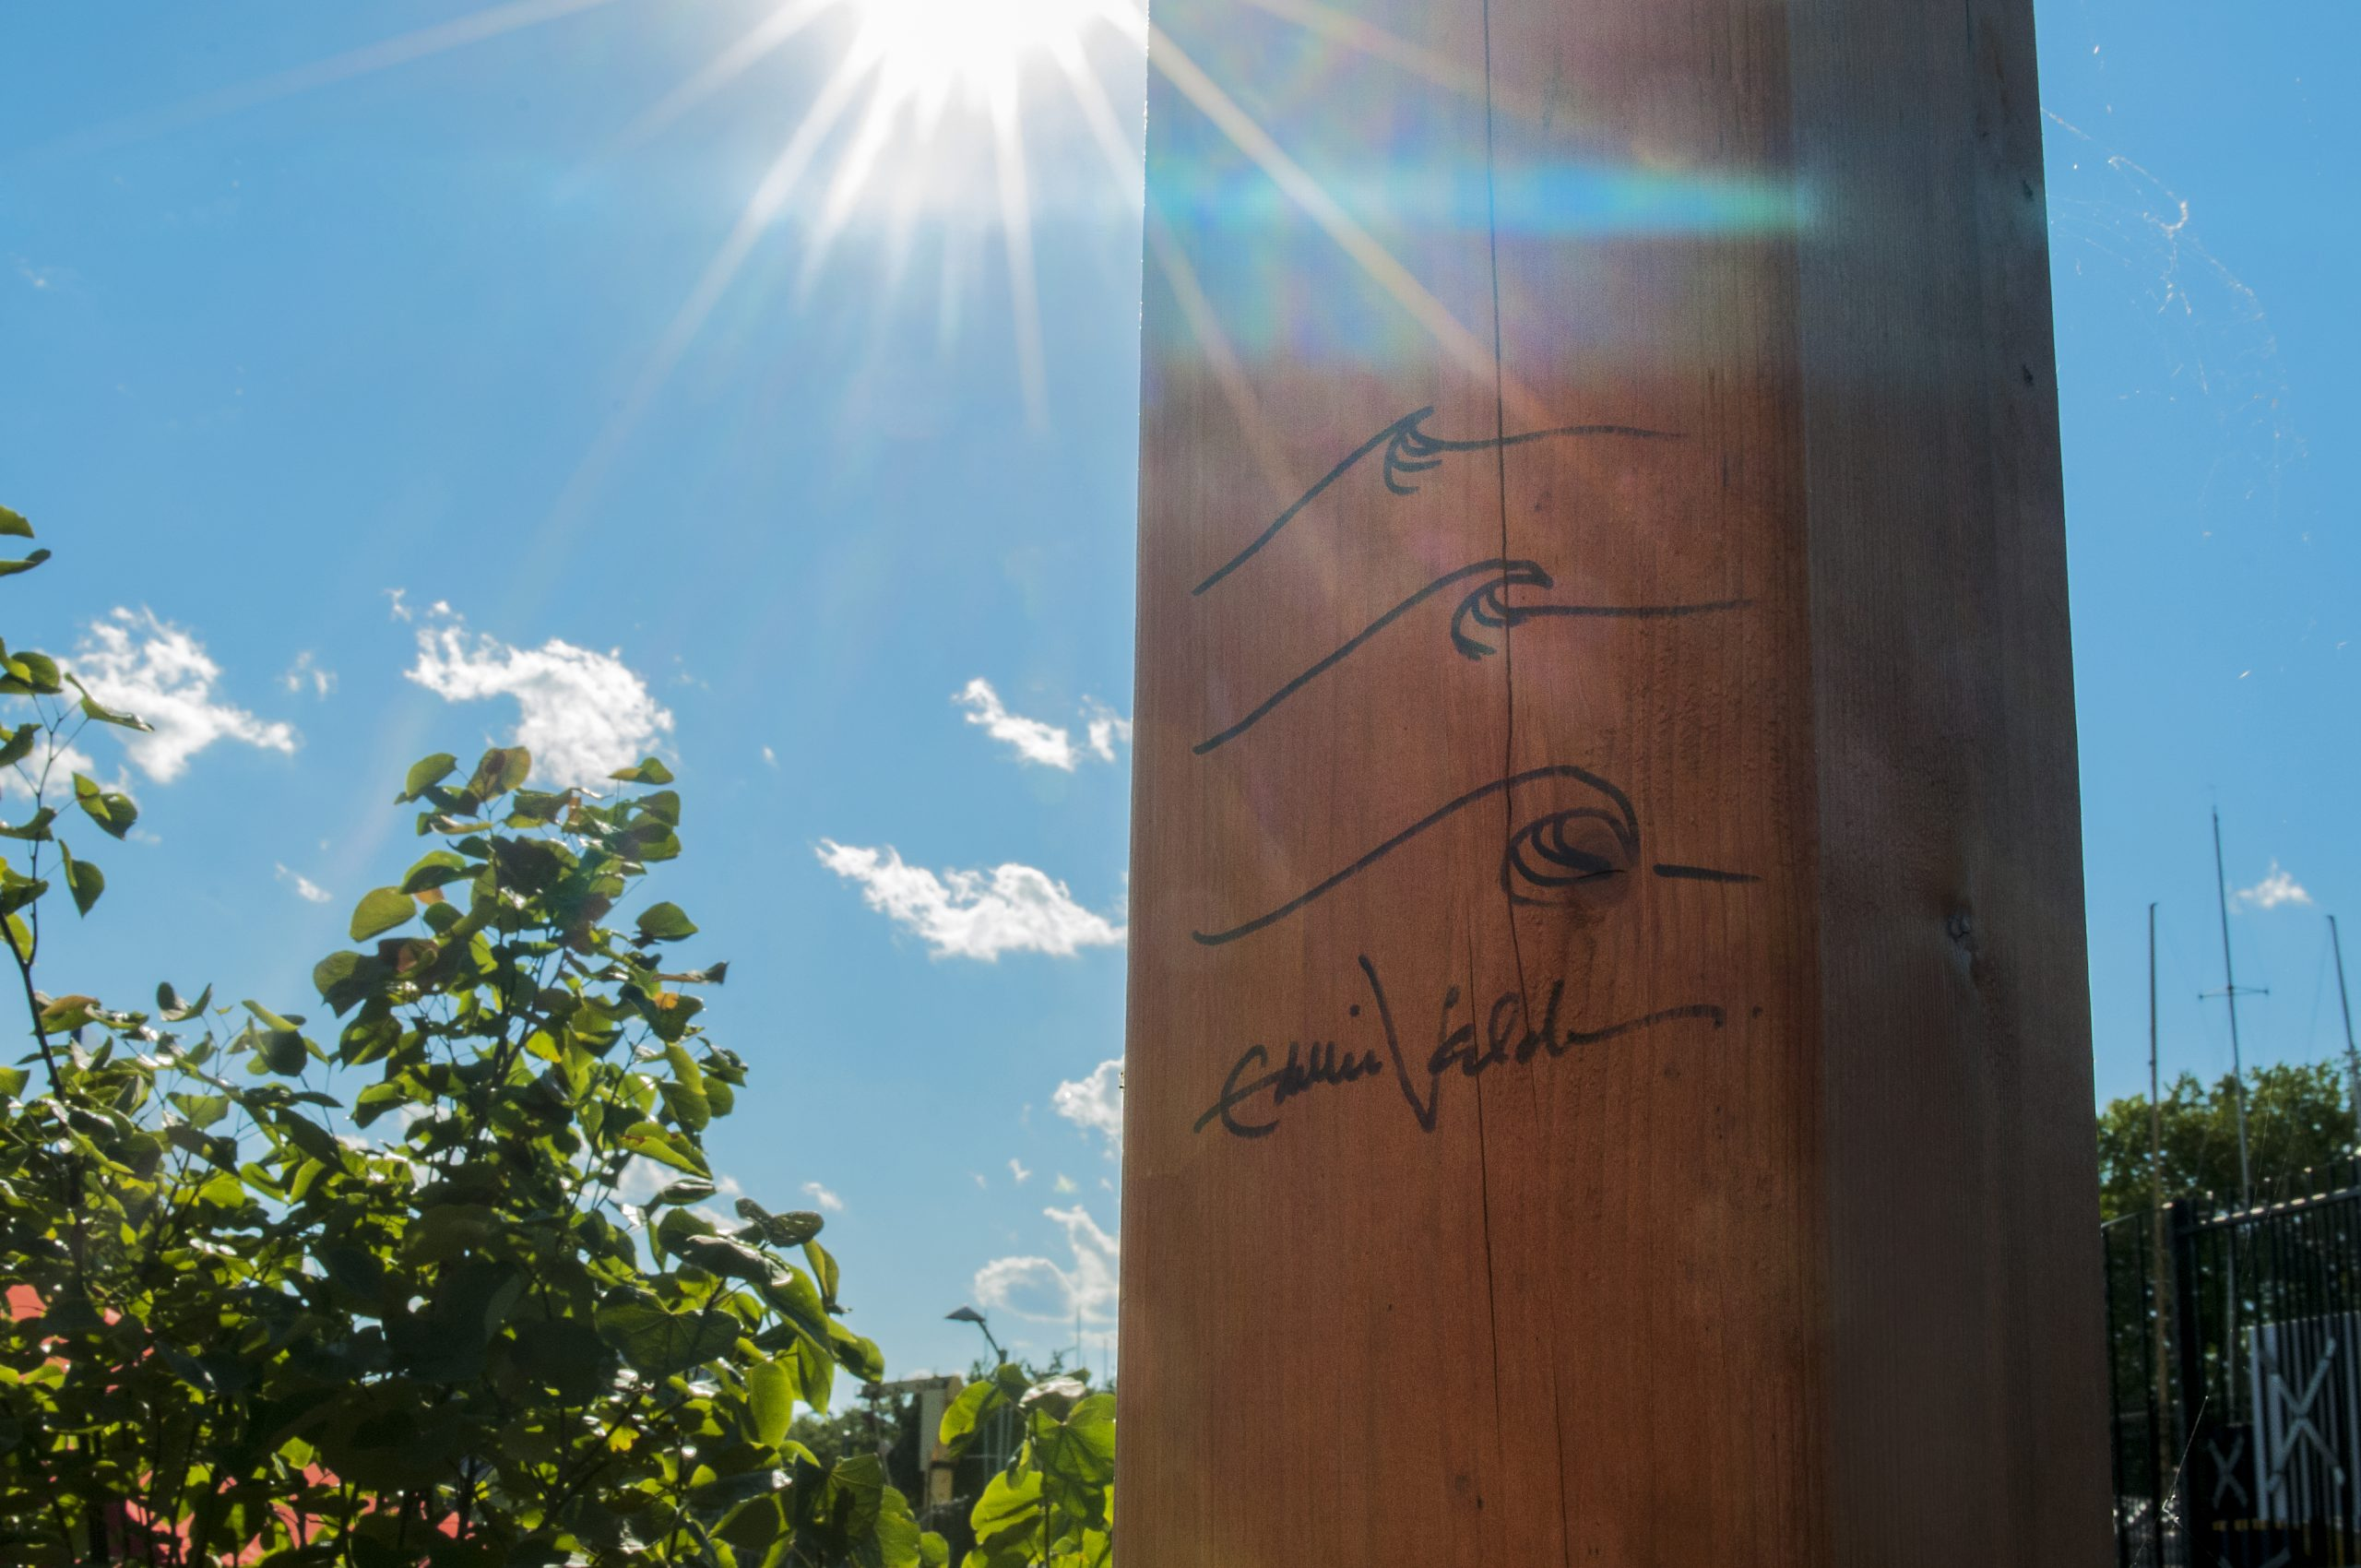 Eddie Vedder autographed the party dock's stage.